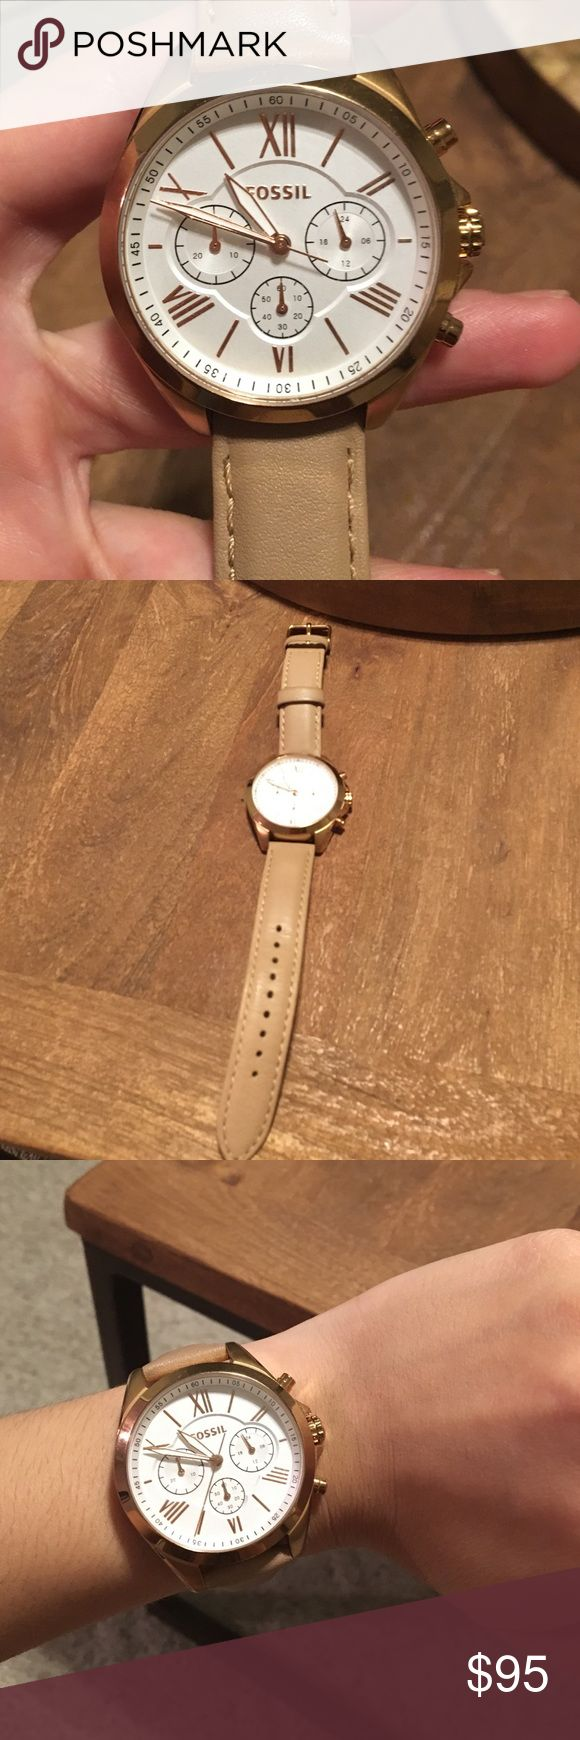 🔶LOWEST🔶FOSSIL GOLD/ROSE GOLD WATCH Great condition! A little too big for my taste Fossil Accessories Watches